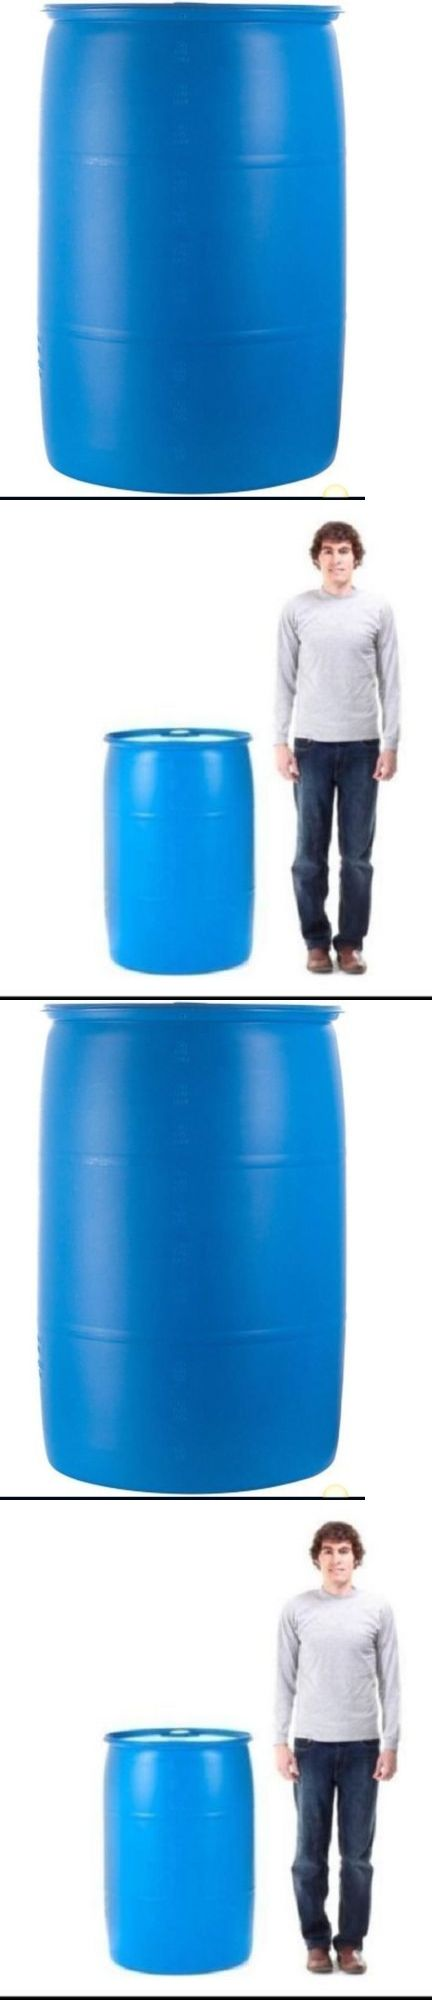 Water Storage and Rain Barrels 139915: Water Storage Barrel 55 Gallon Barrels Rain Water Emergency Storage Containers -> BUY IT NOW ONLY: $73.99 on eBay!